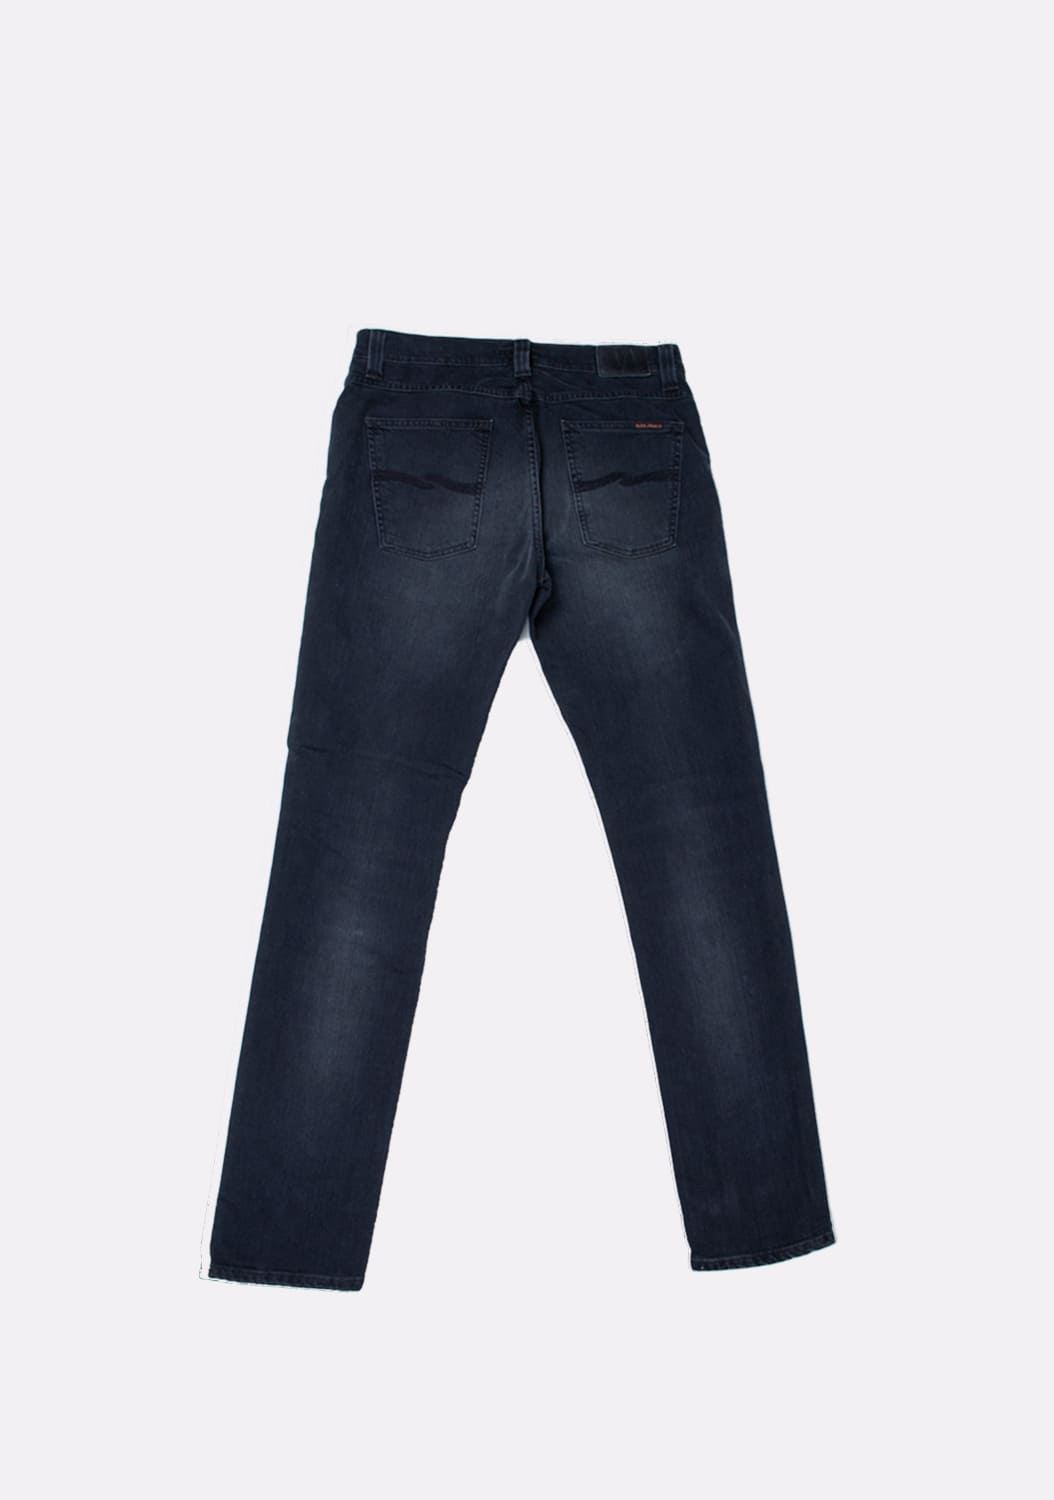 Nudie-Jeans-Lean-Dean-Black-Changes-34-34-juodi-dzinsai (5)